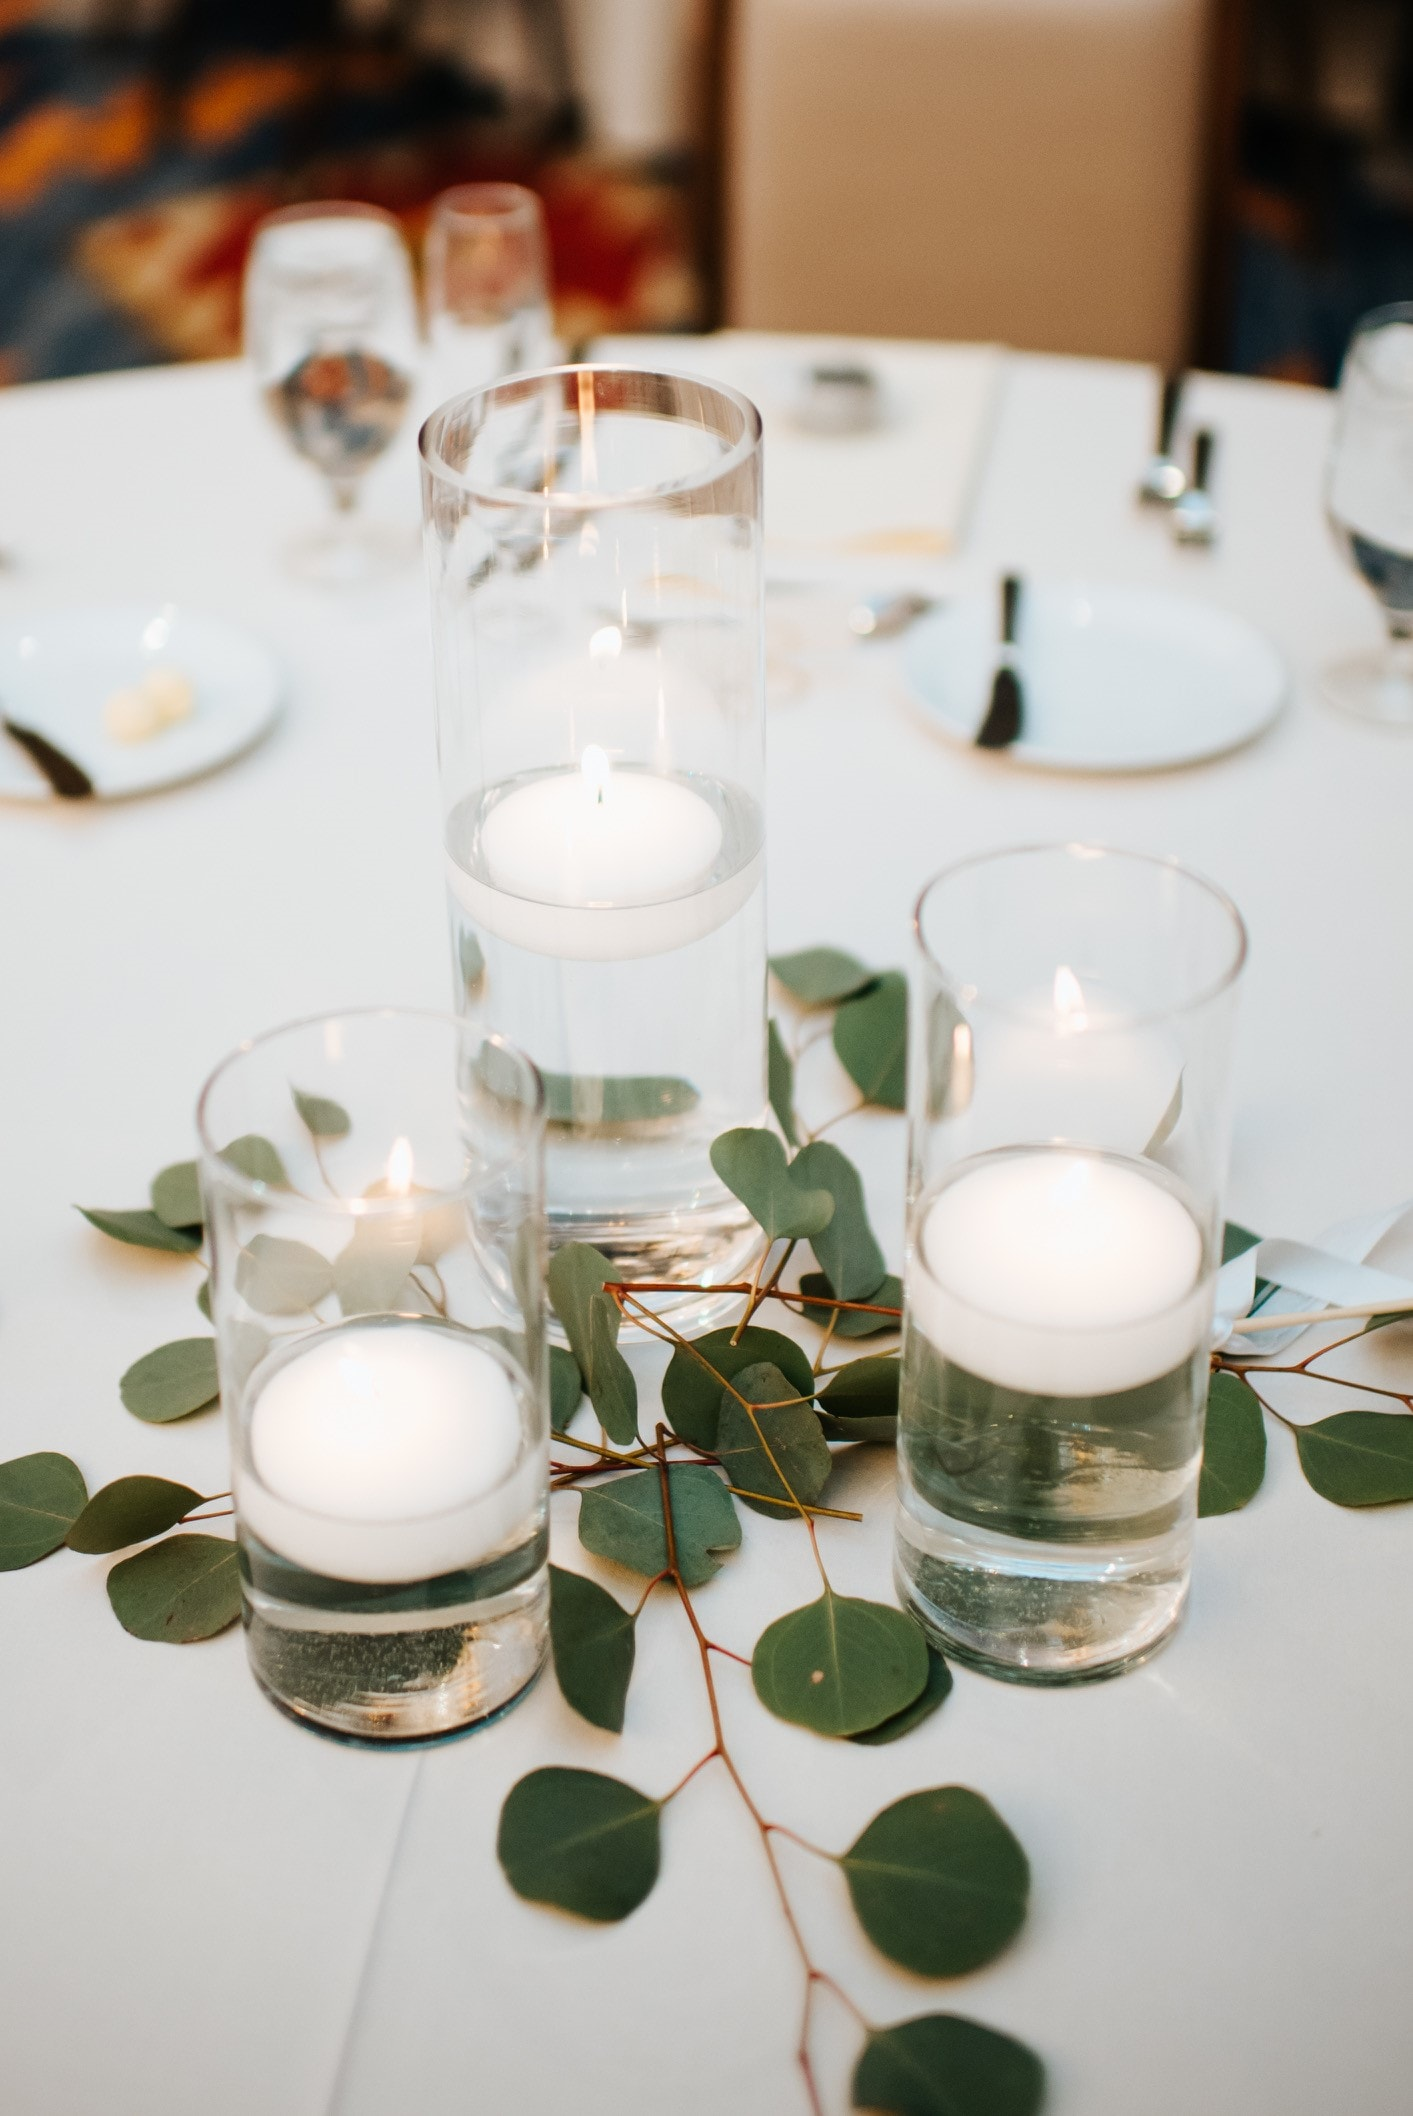 Candles and leaves as centerpiece